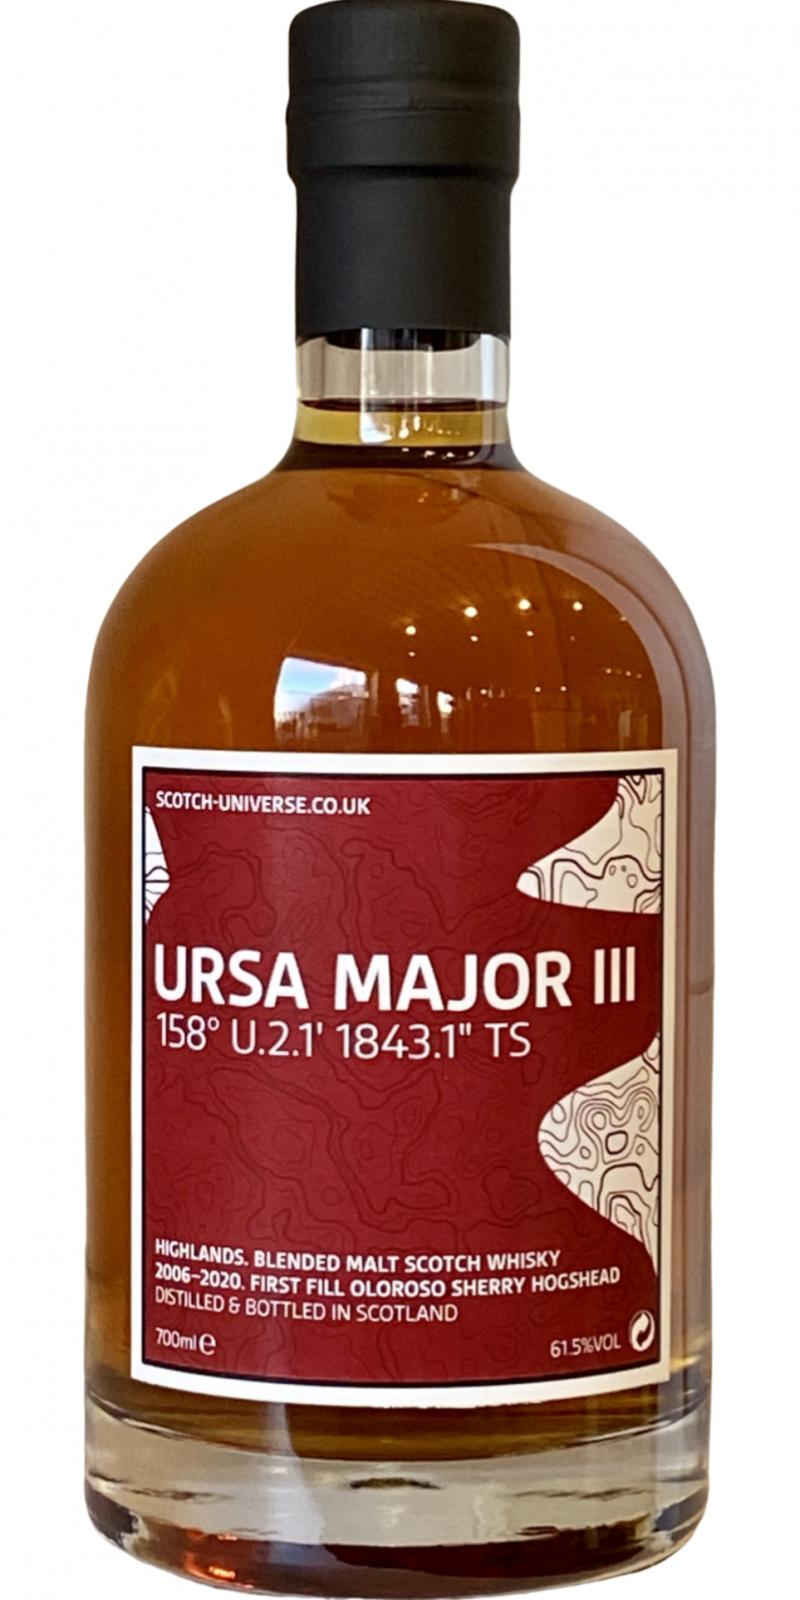 "Scotch Universe Ursa Major III - 158° U.2.1 1843.1"" TS"